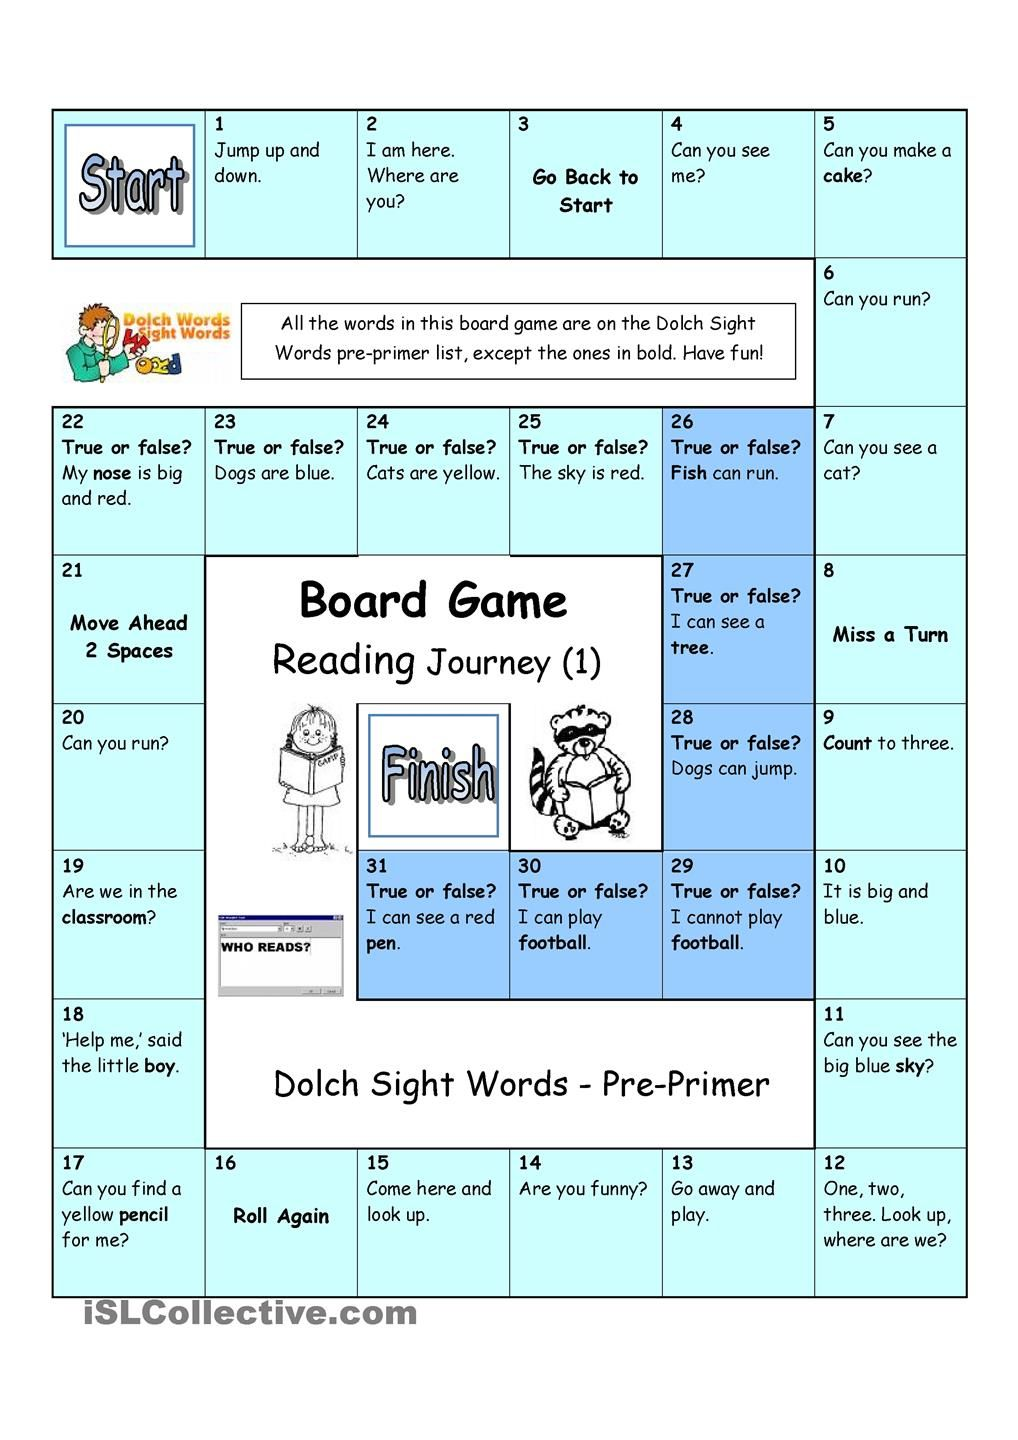 worksheet Pre Primer Sight Word Worksheets board game reading journey 1 dolch sight words pre primer worksheet free esl printable worksheets made by teachers